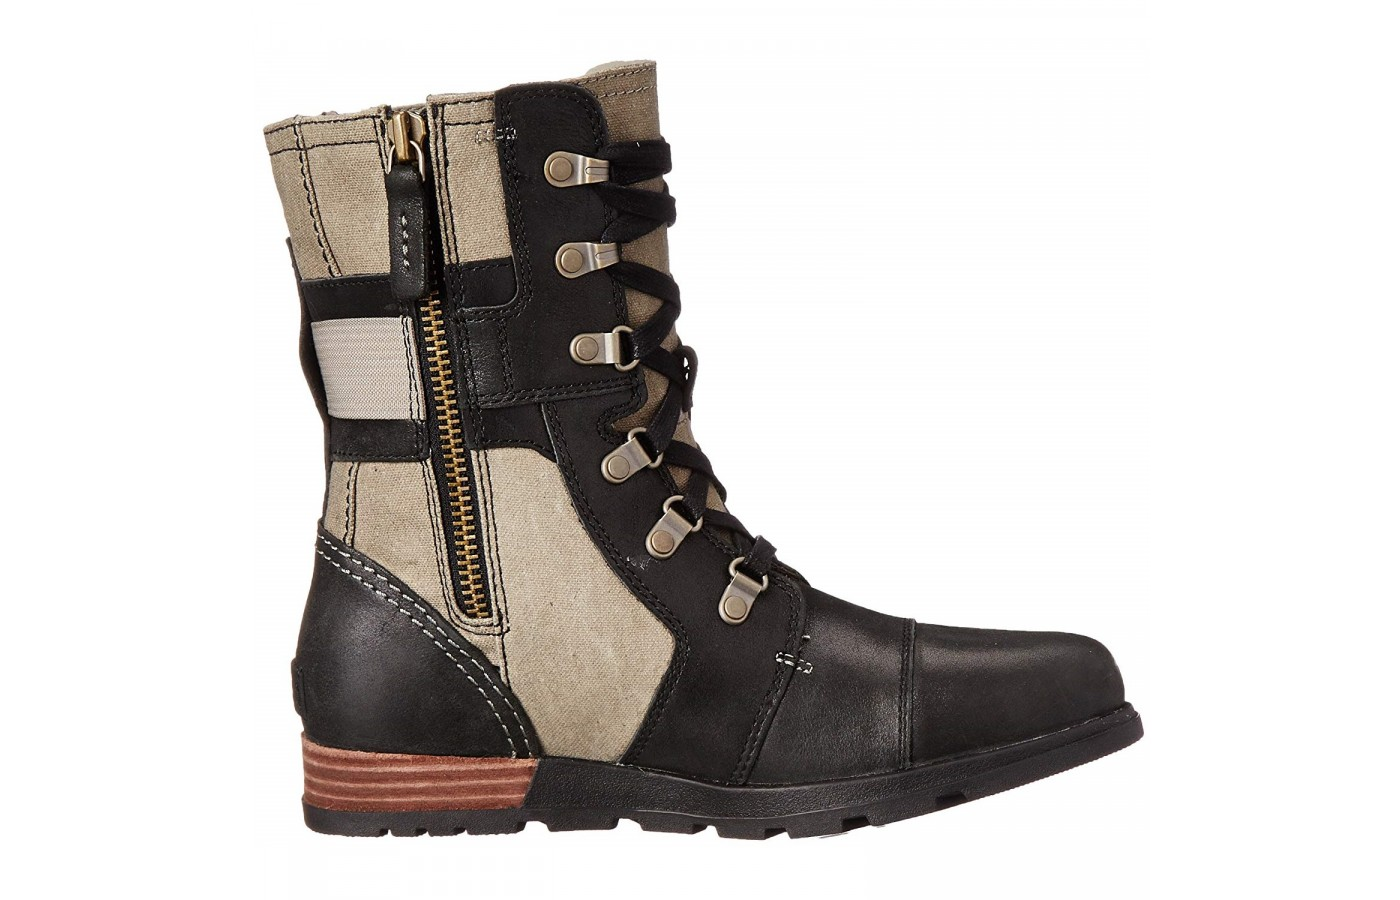 The Sorel Major Carly are highly fashionable for style while staying warm.